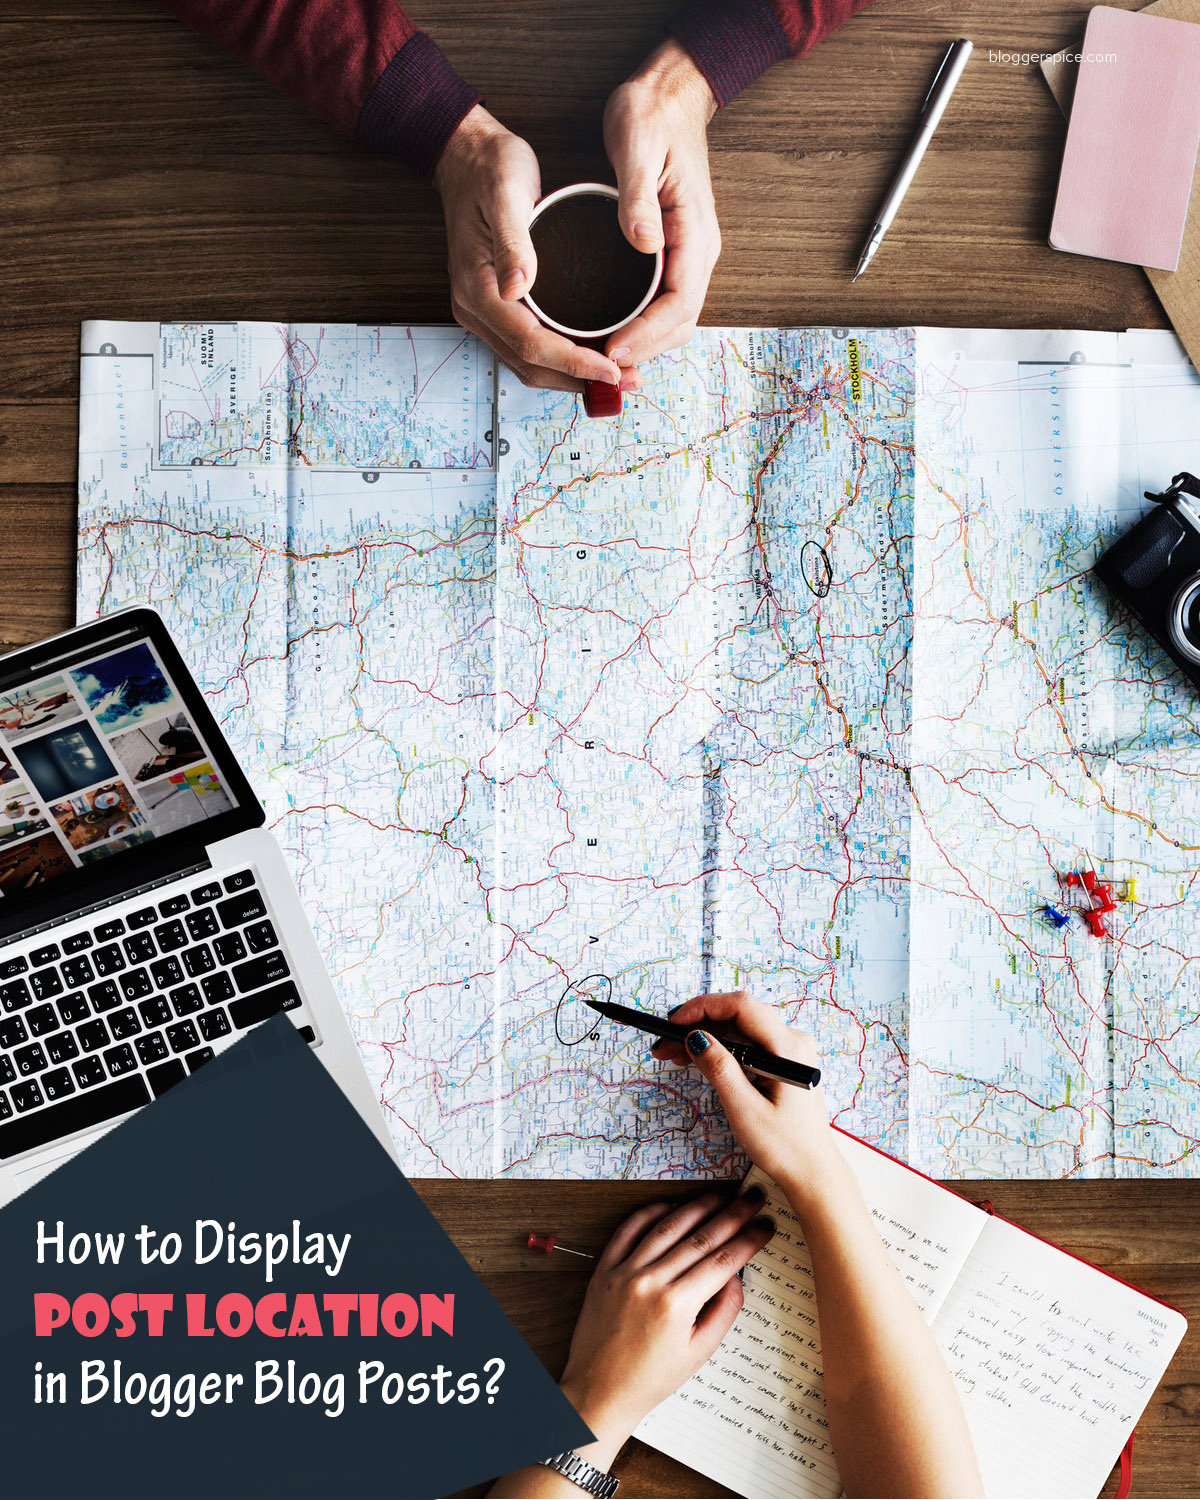 tutorial about to Display Post Location in Blogger Blog Posts?